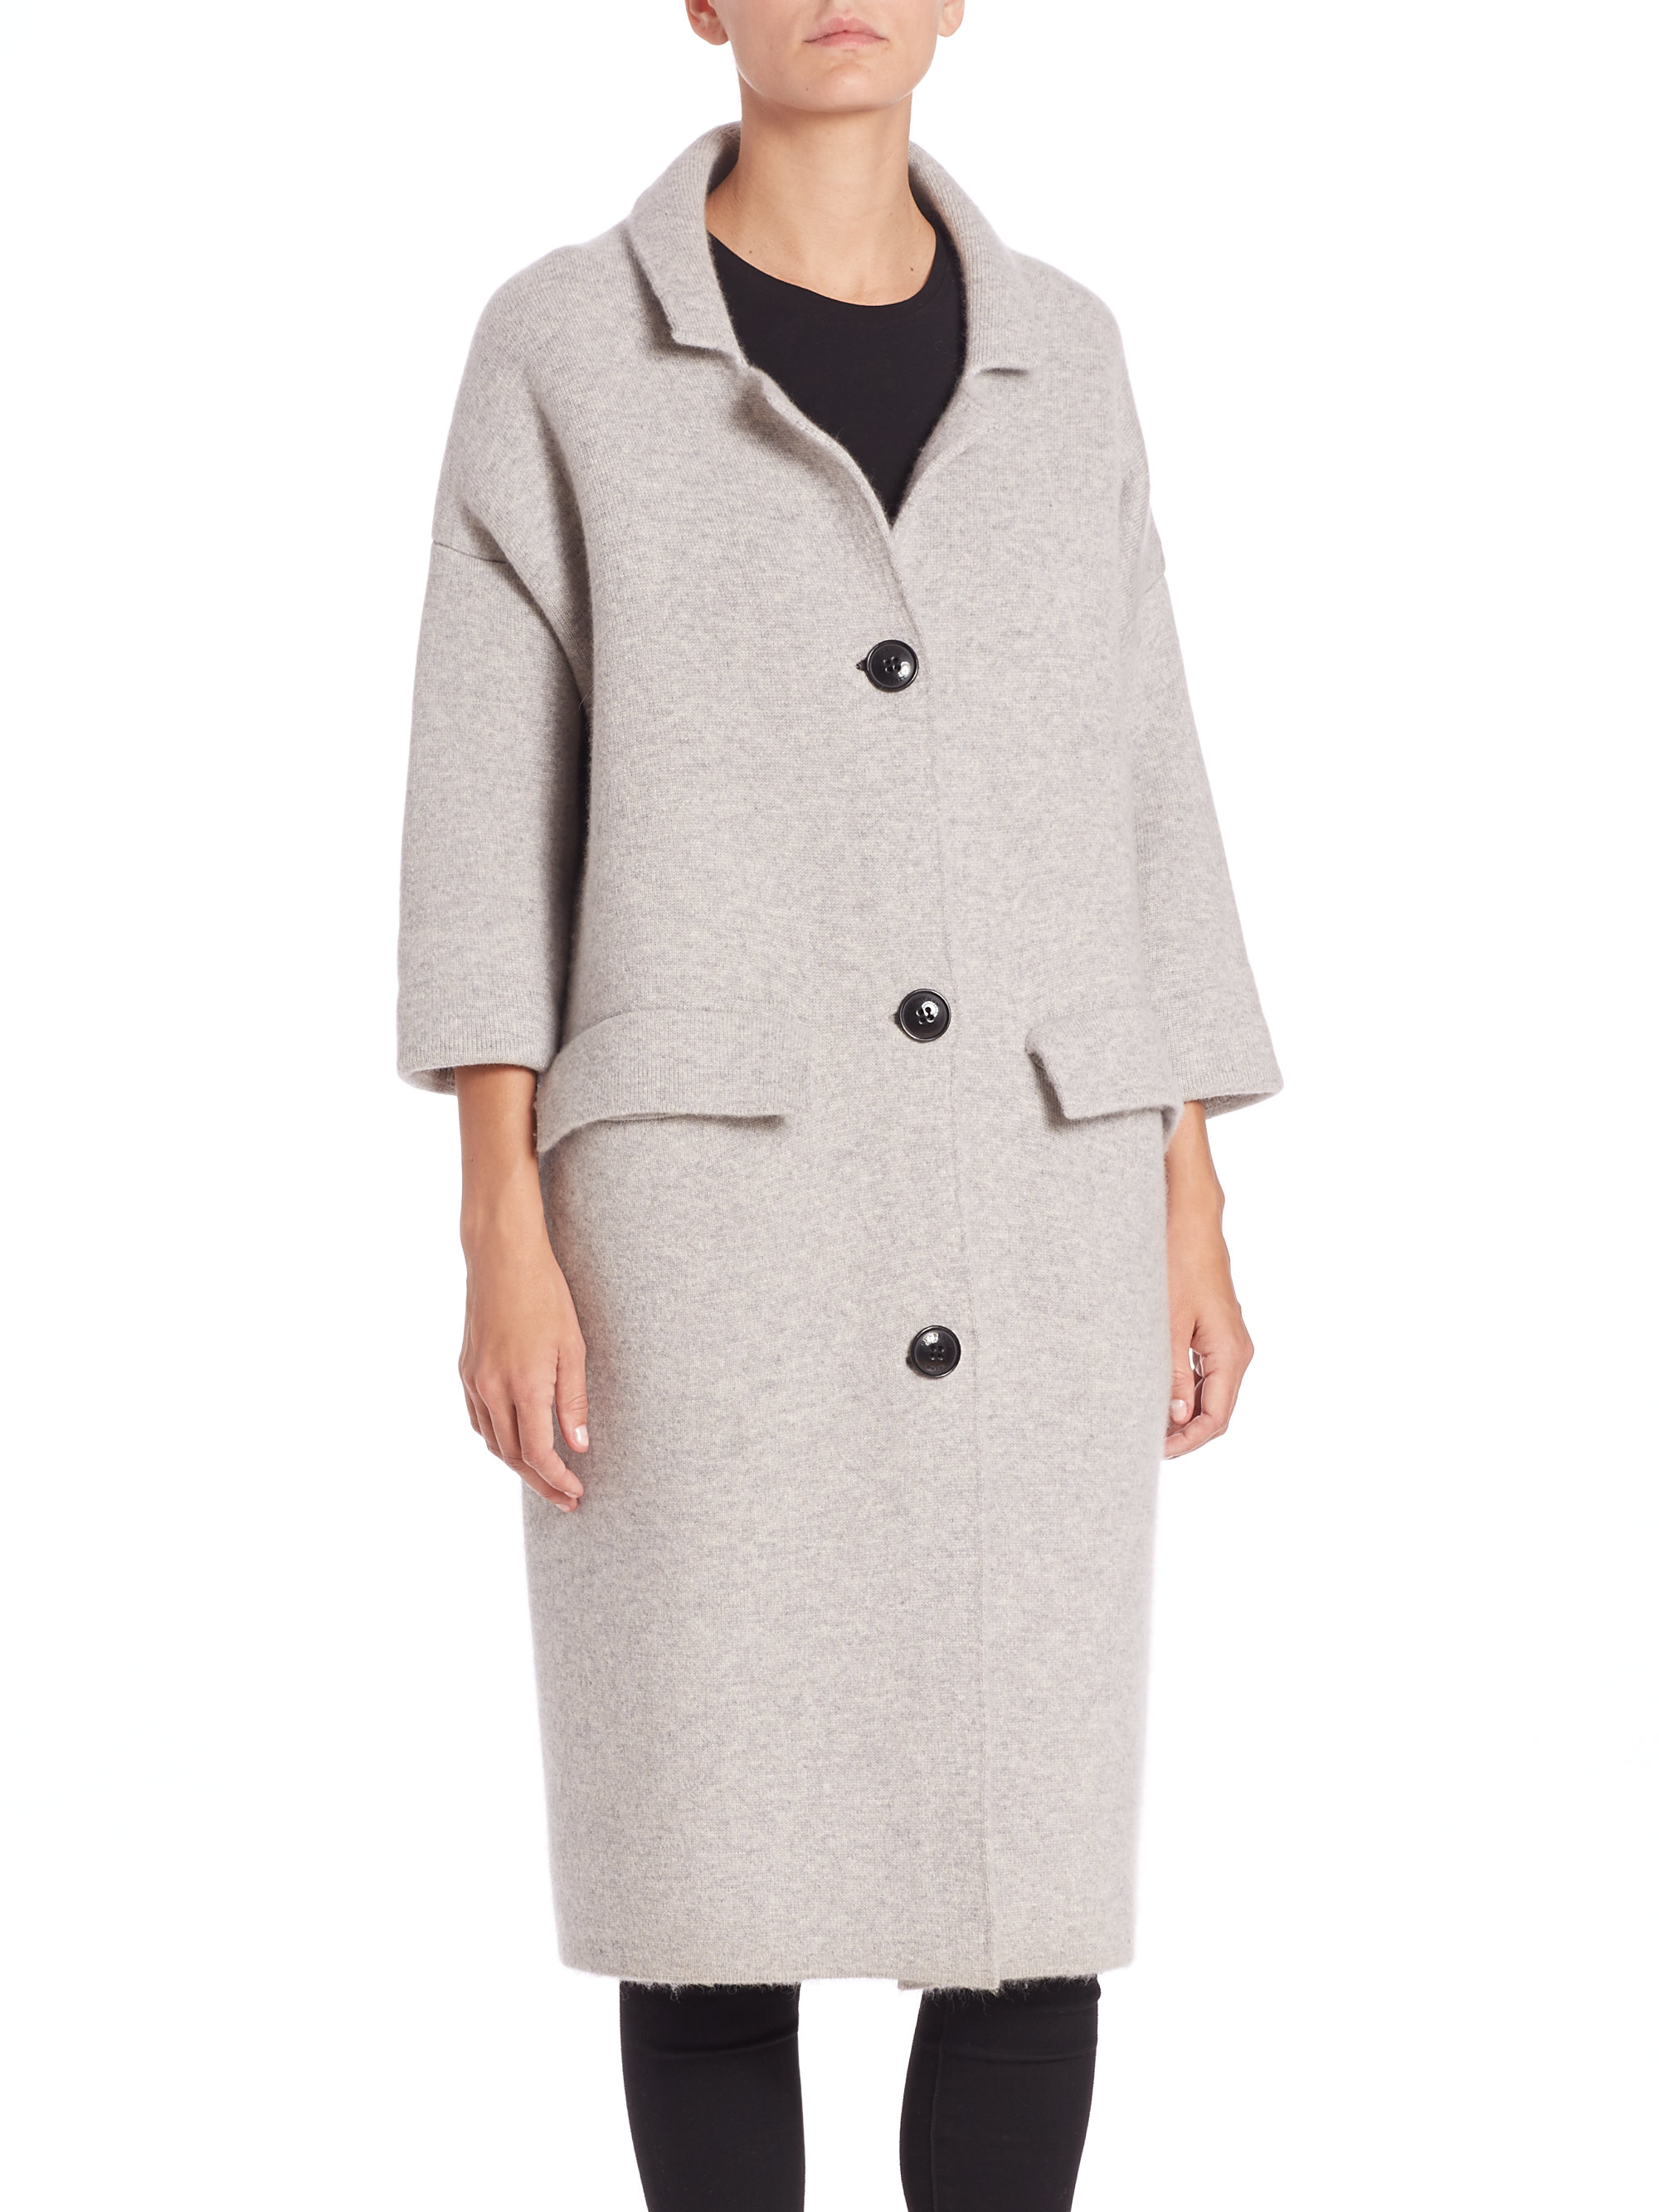 Burberry Oversized Wool & Cashmere-blend Coat in Gray | Lyst